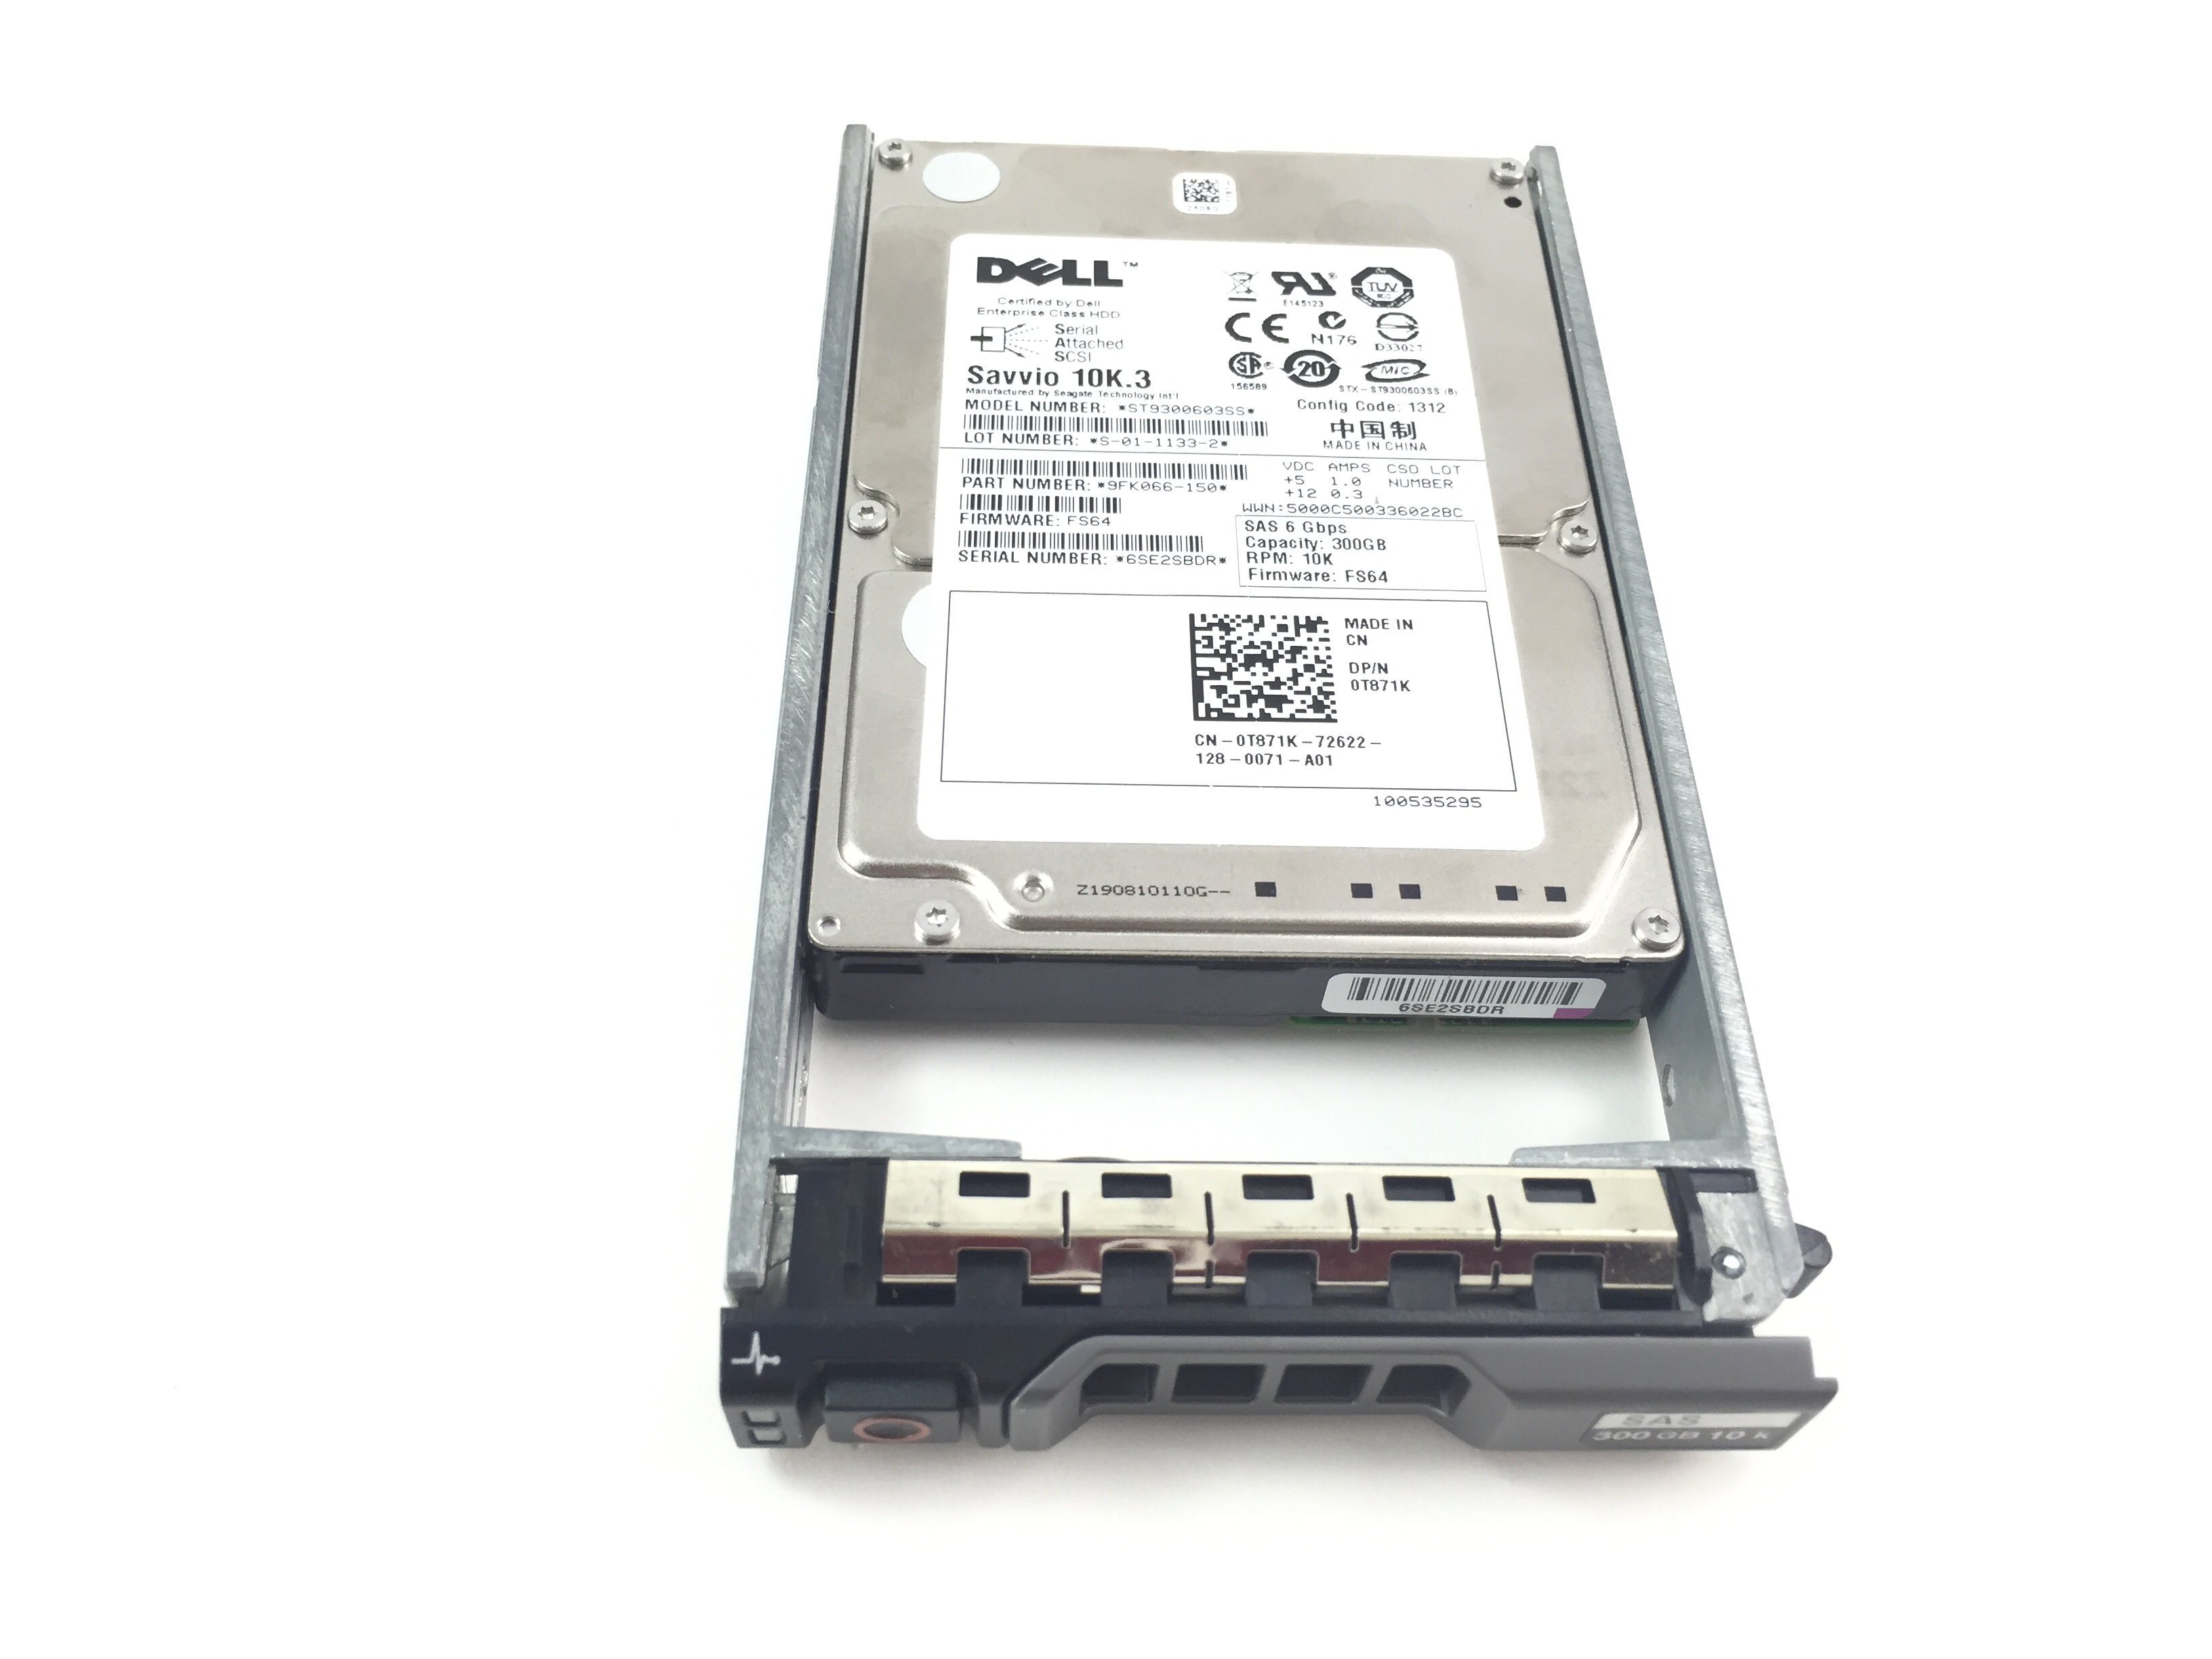 DELL 300GB 10K 6GBPS SAS 2.5'' HARD DRIVE W /R SERIES TRAY (T871K)